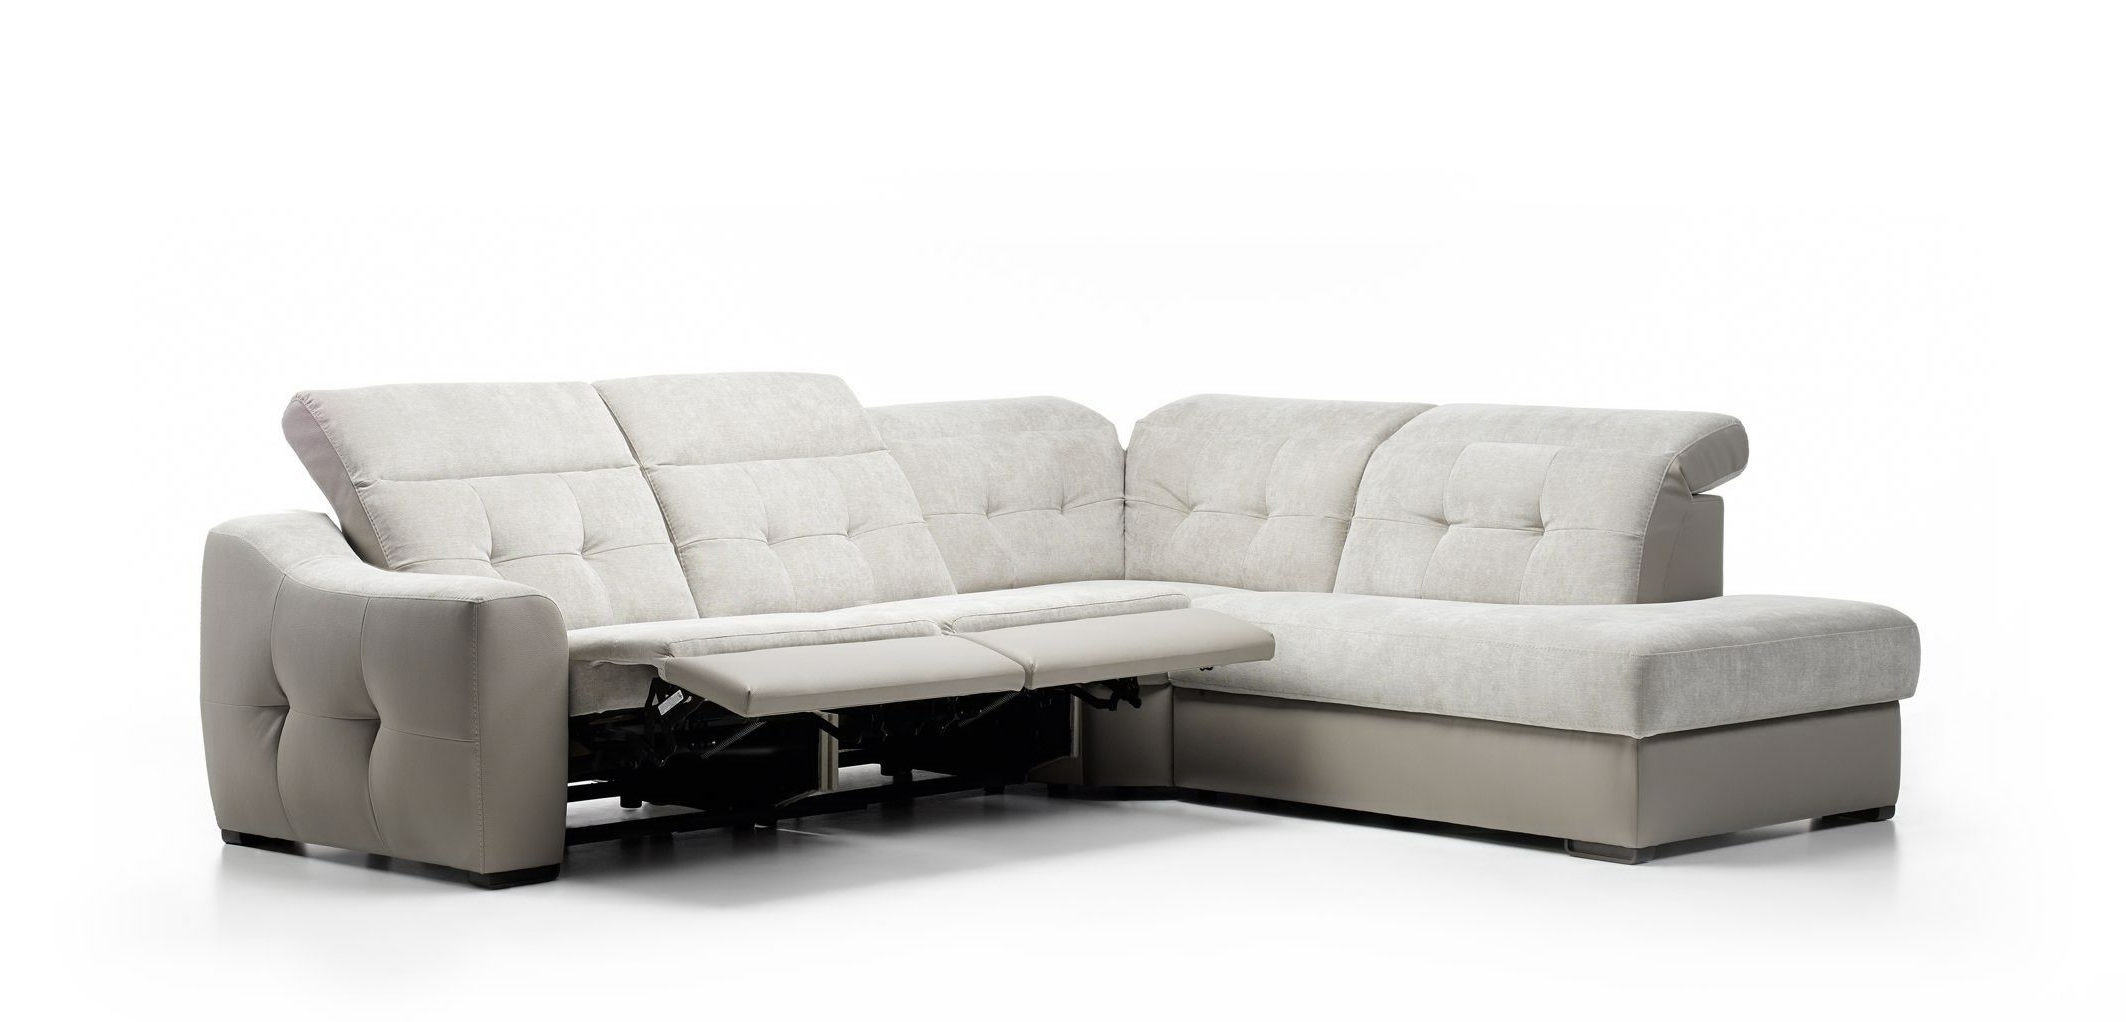 Sectional Sofa Design: Modern Sectional Sofa Bed Canada For Most Recent Sectional Sofas In Canada (View 15 of 20)